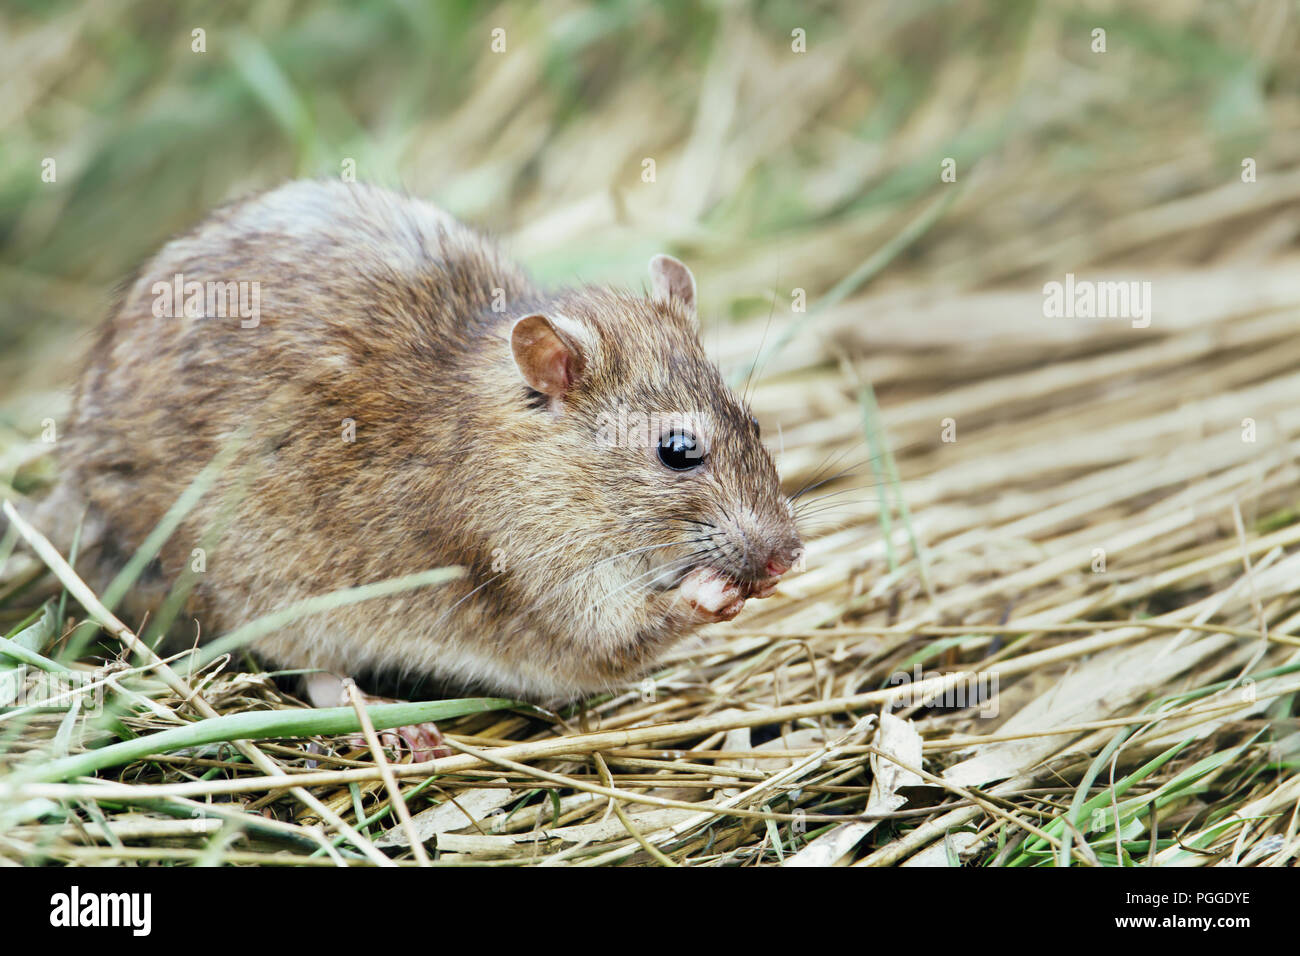 Close-up of a rat feeding in the field, UK. - Stock Image